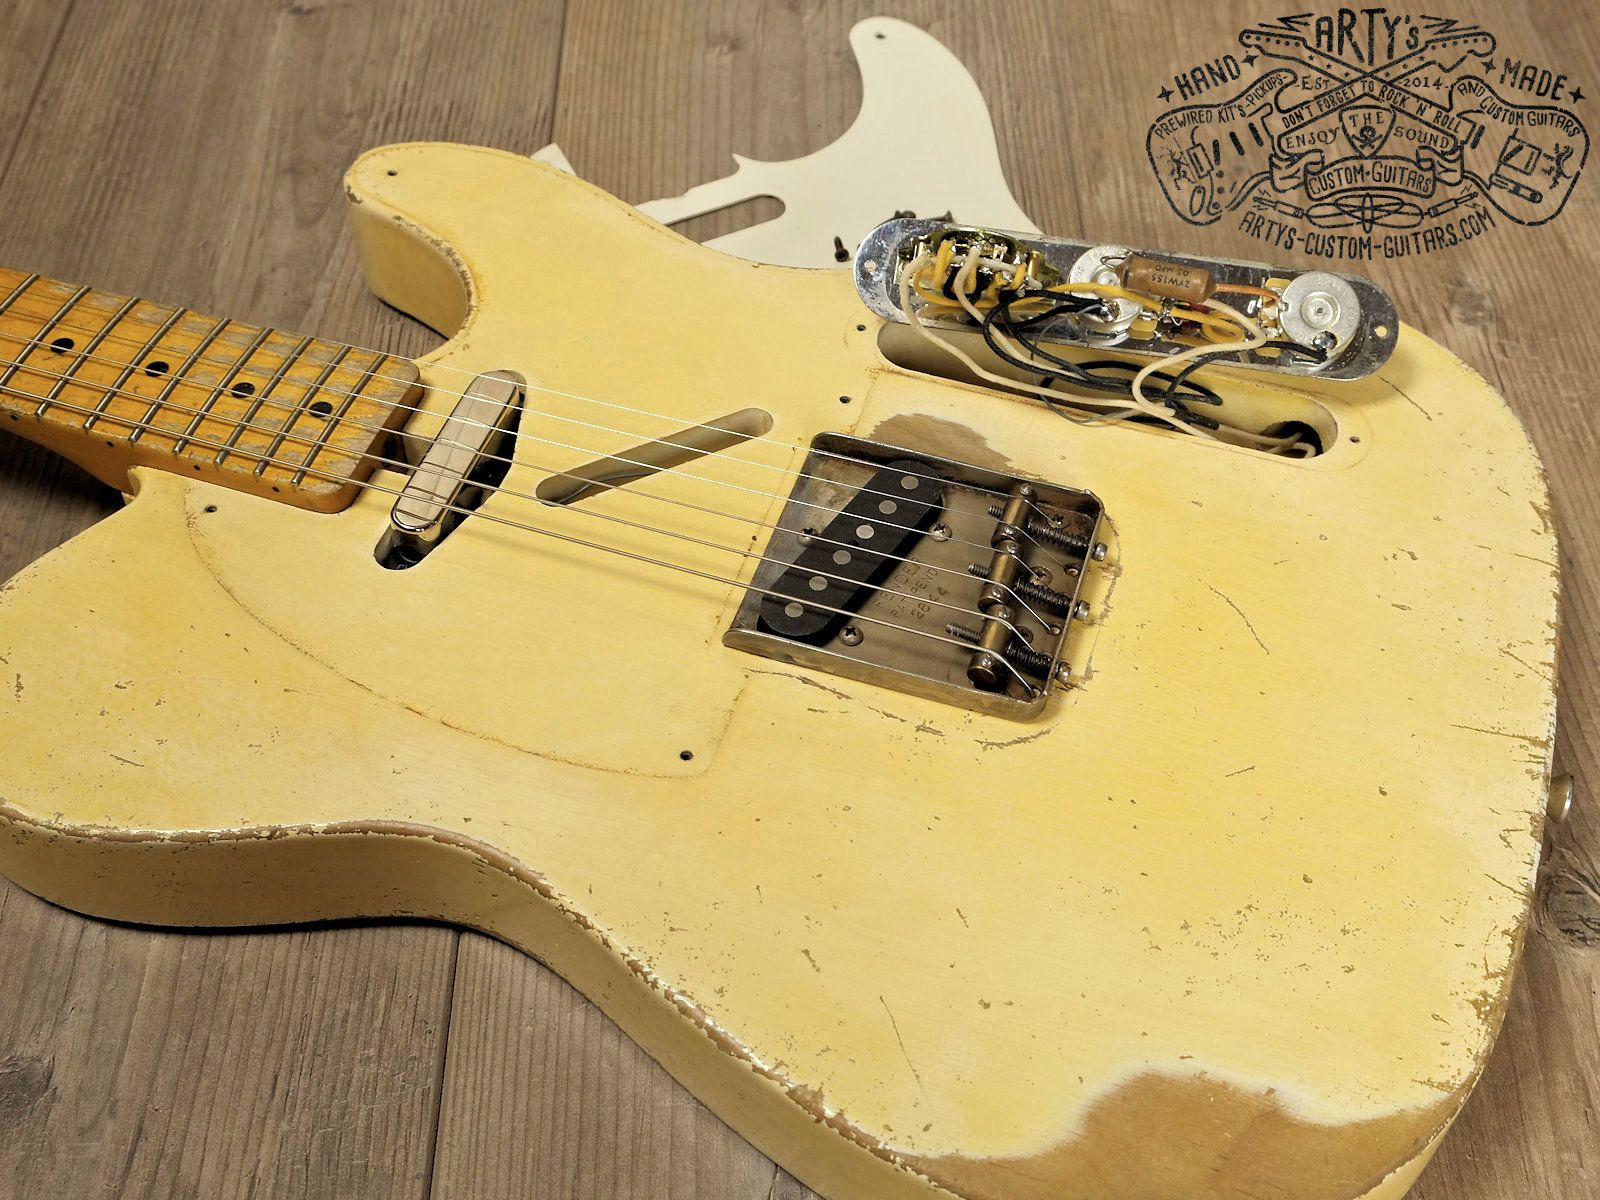 hight resolution of vintage blonde 1958 telecaster maple neck alder body nitro finish relic aged arty s custom guitars blond